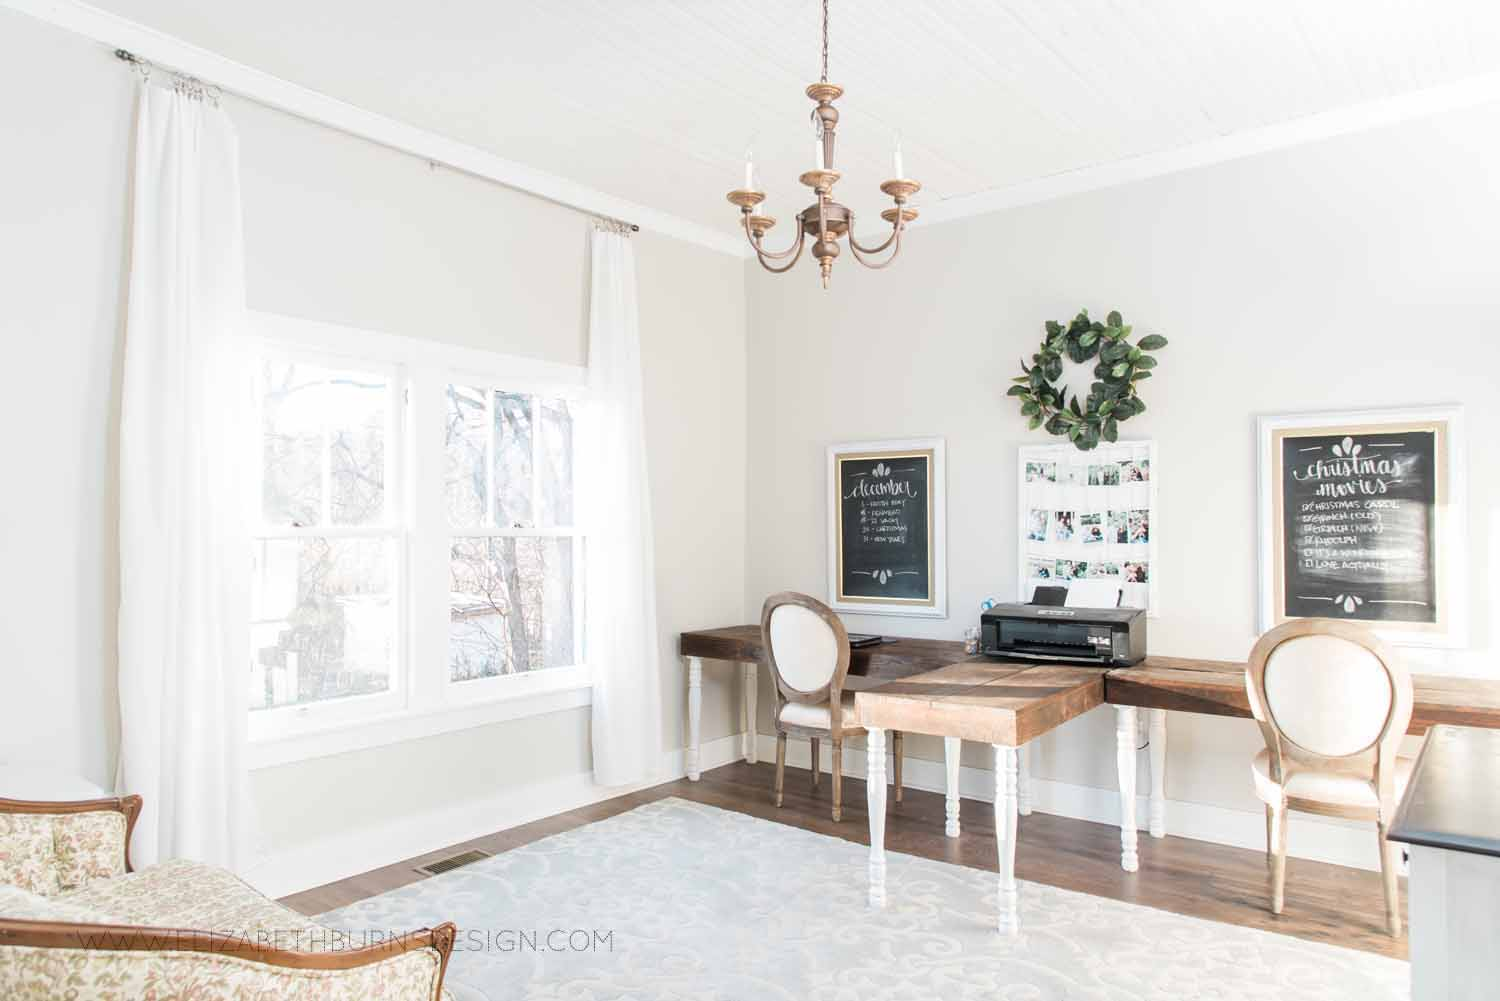 Elizabeth Burns Design Raleigh Interior Designer  Farmhouse Fixer Upper Cottage Renovation, Sherwin Williams Agreeable Gray SW 7029 Shared Office Two Desks (3).jpg